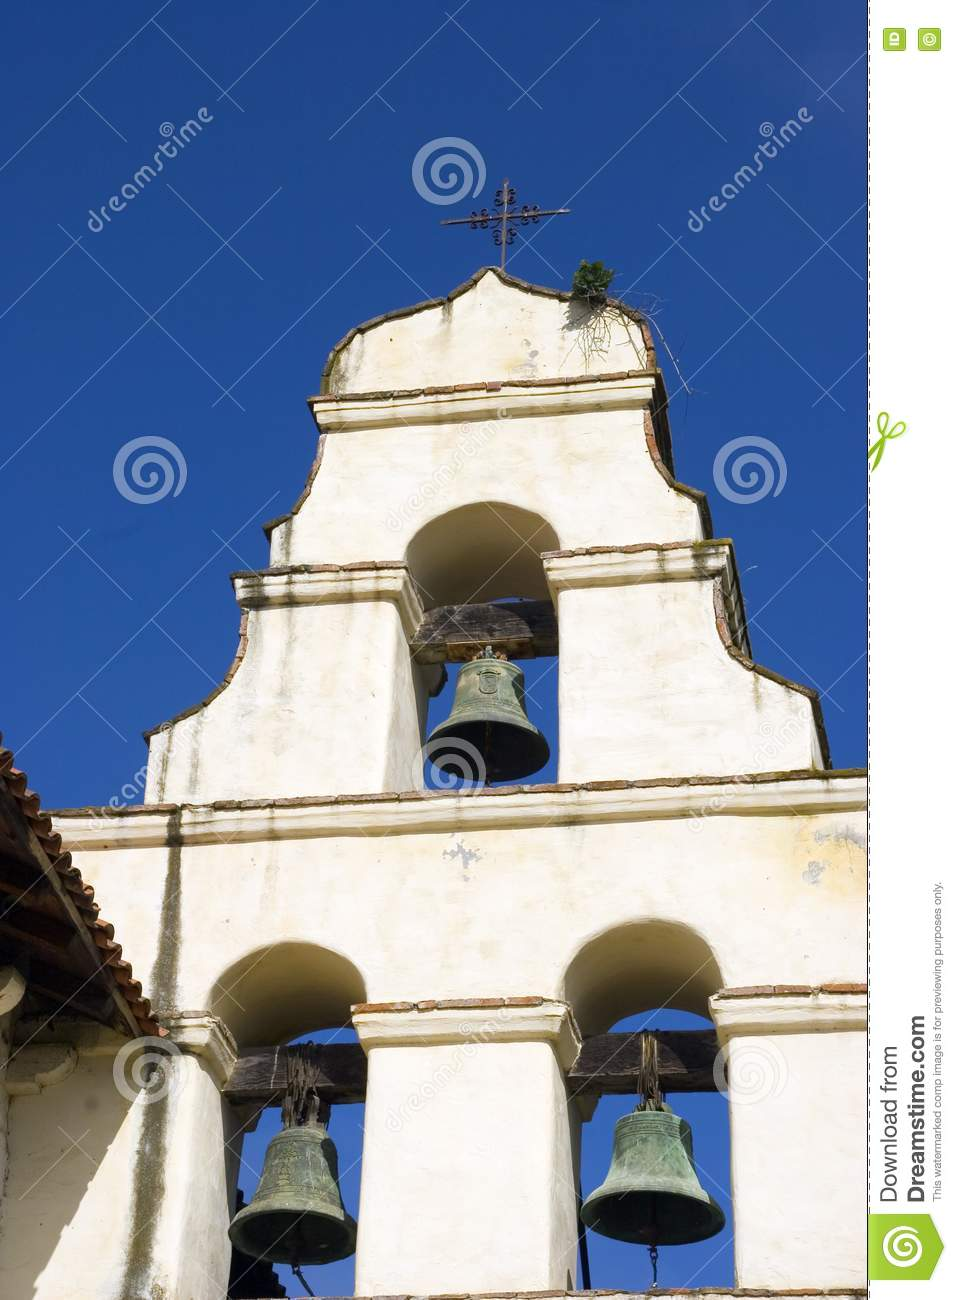 mission bell tower royalty free stock images